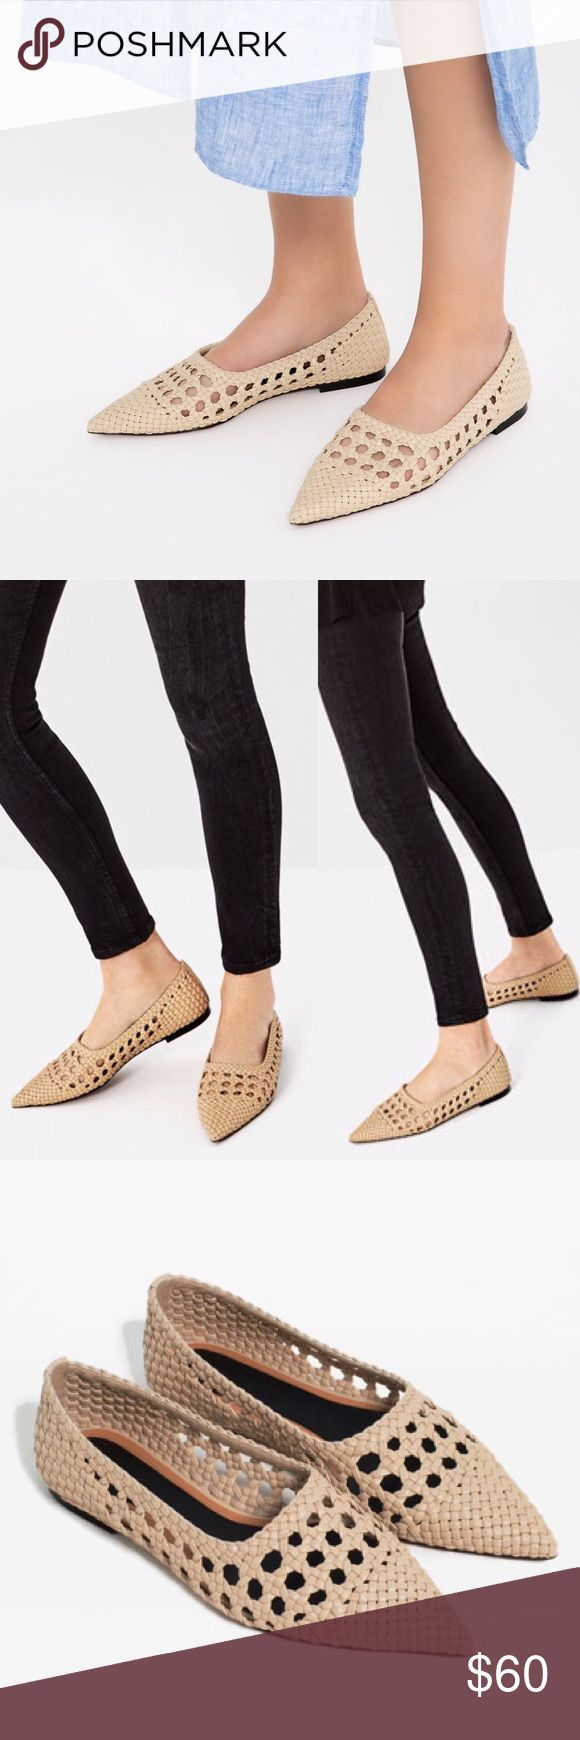 ZARA OPENWORK BALLET FLATS New with tags, no box. Size 38. Flat ecru shoes, braided effect detail, pointed toe. Upper and slipsole: 100% polyurethane, sole: 100% acrylonitrile butadiene styrene. Super adorable Zara Shoes Flats & Loafers